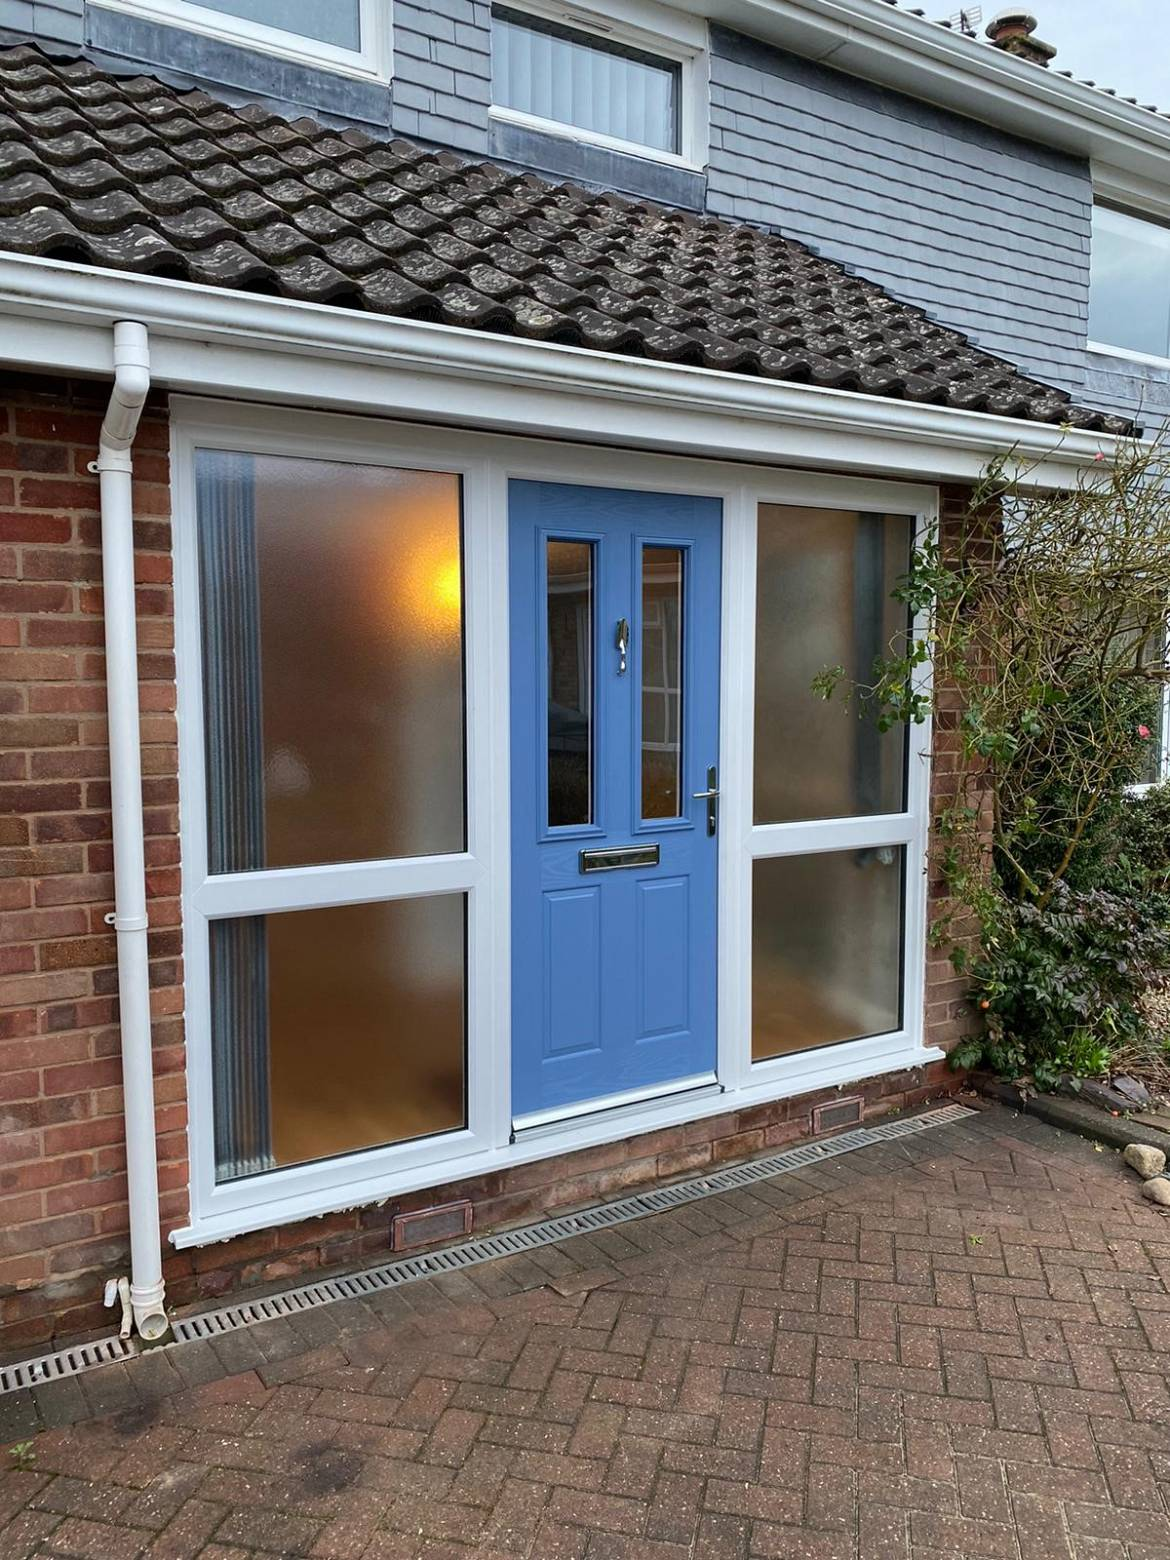 aaa upvc entrance after with new composite door and side screens